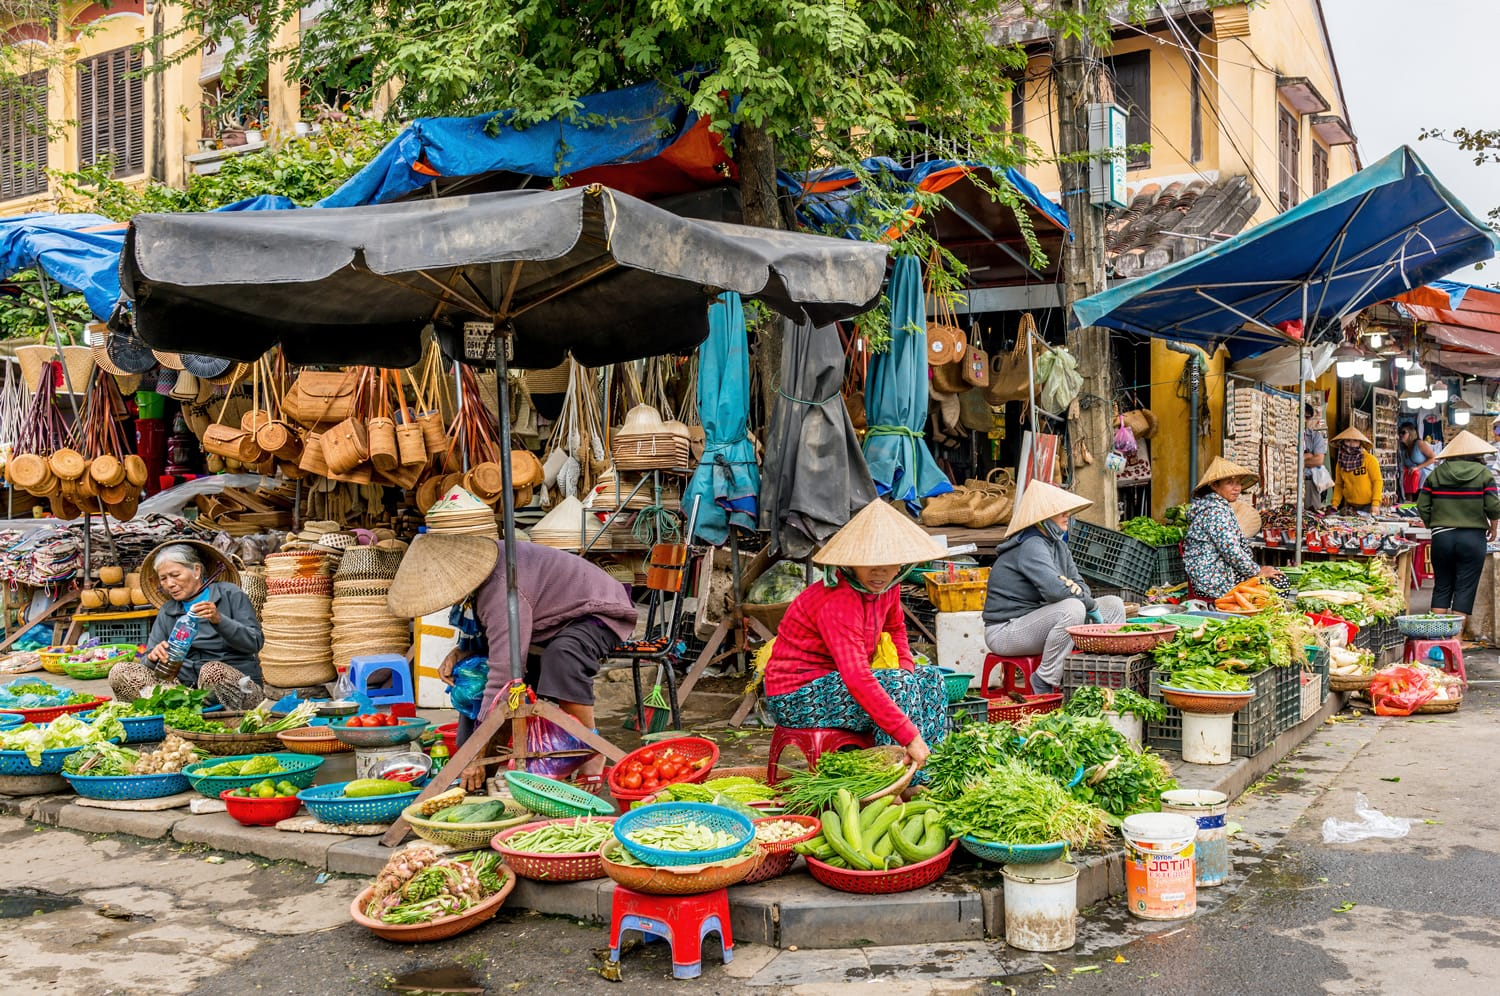 Fresh vegetables in traditional street market in Hoi An, Vietnam.